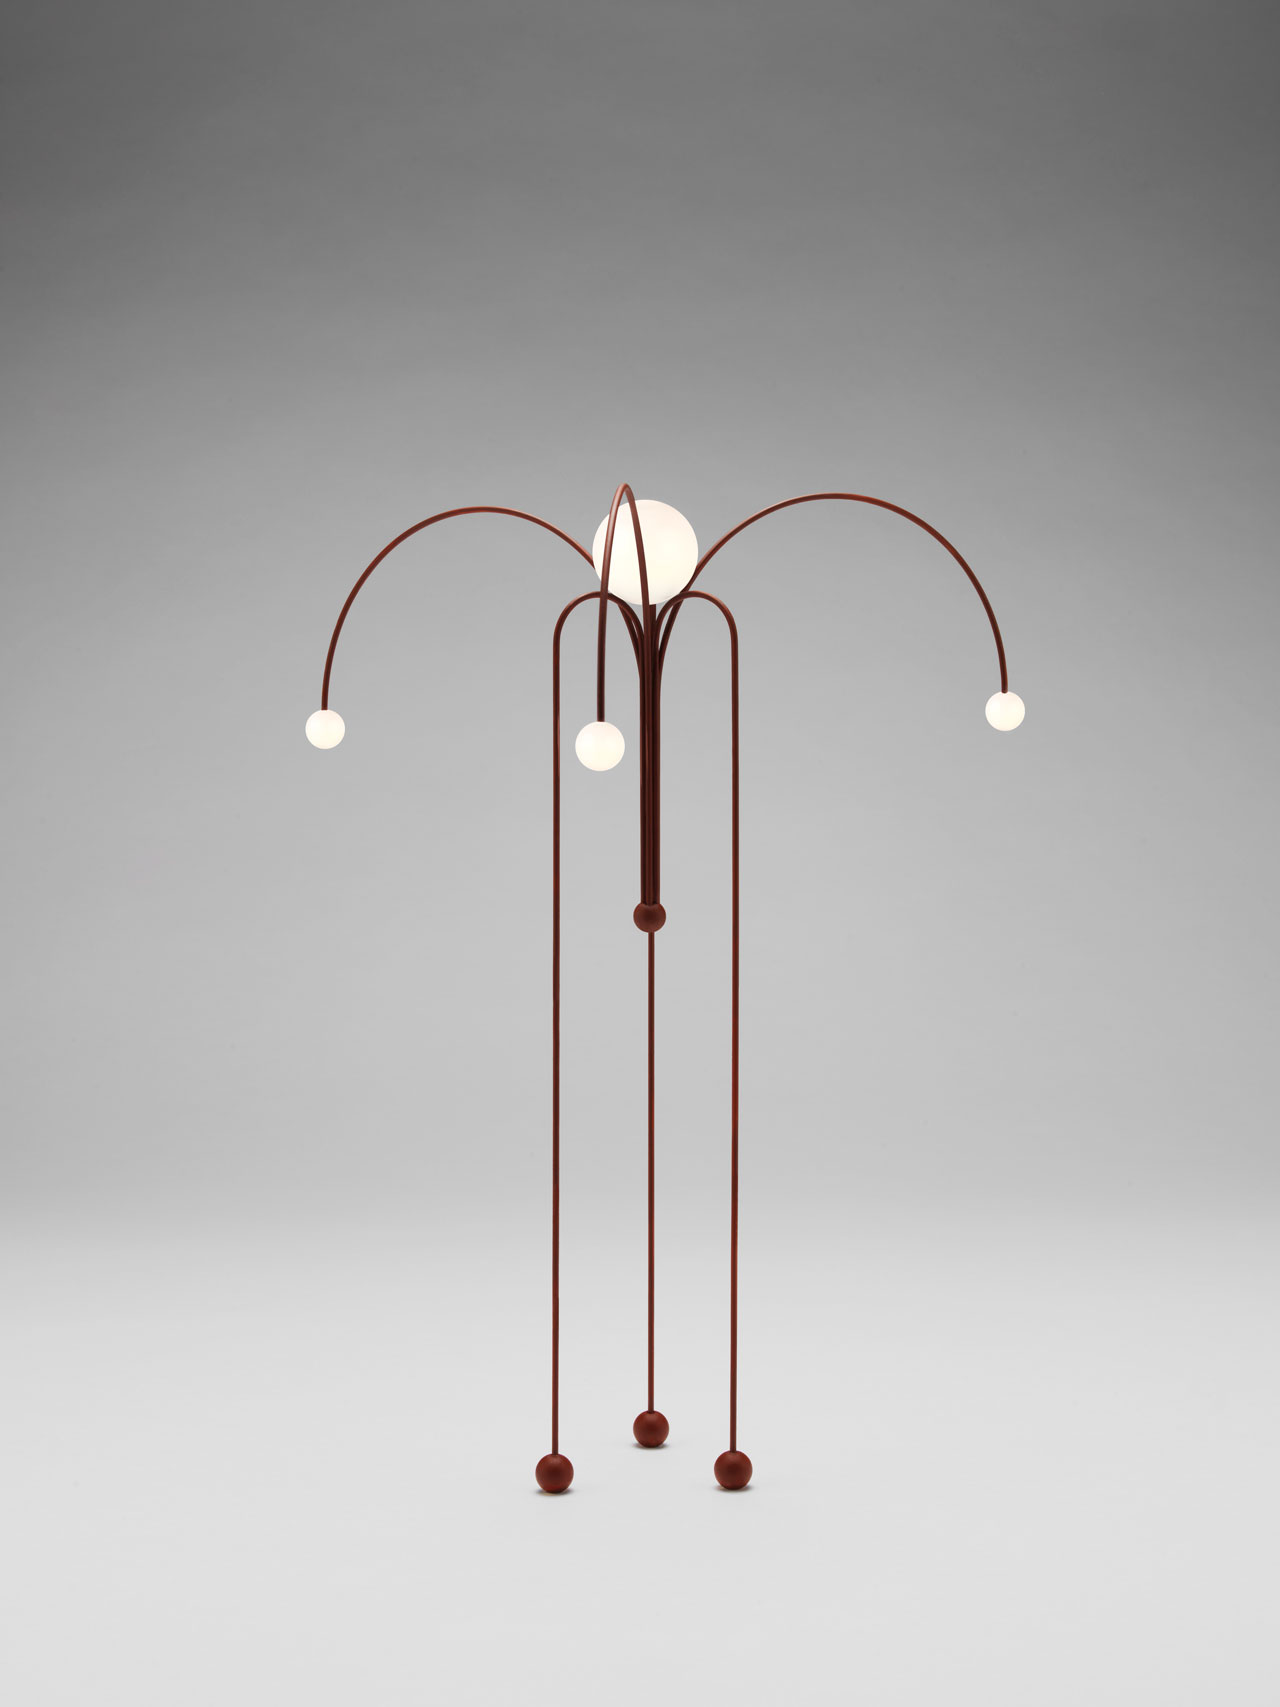 Fontana Amorosa floor lamp by Michael Anastassiades for Nilufar Gallery.